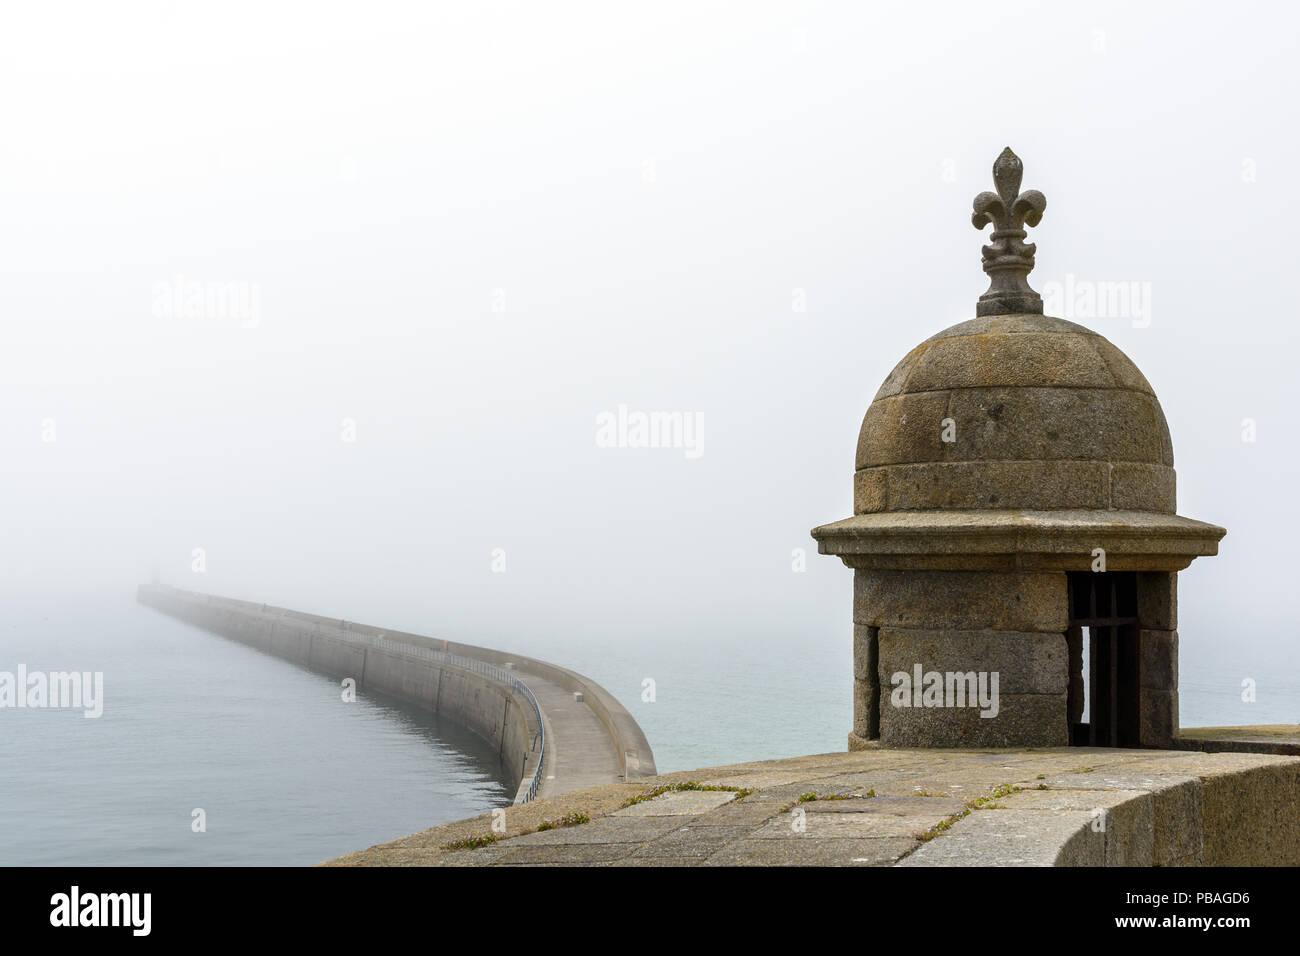 The long breakwater of the walled city of Saint-Malo in Brittany, France, seen from the ramparts in foggy weather with a turret in the foreground. - Stock Image